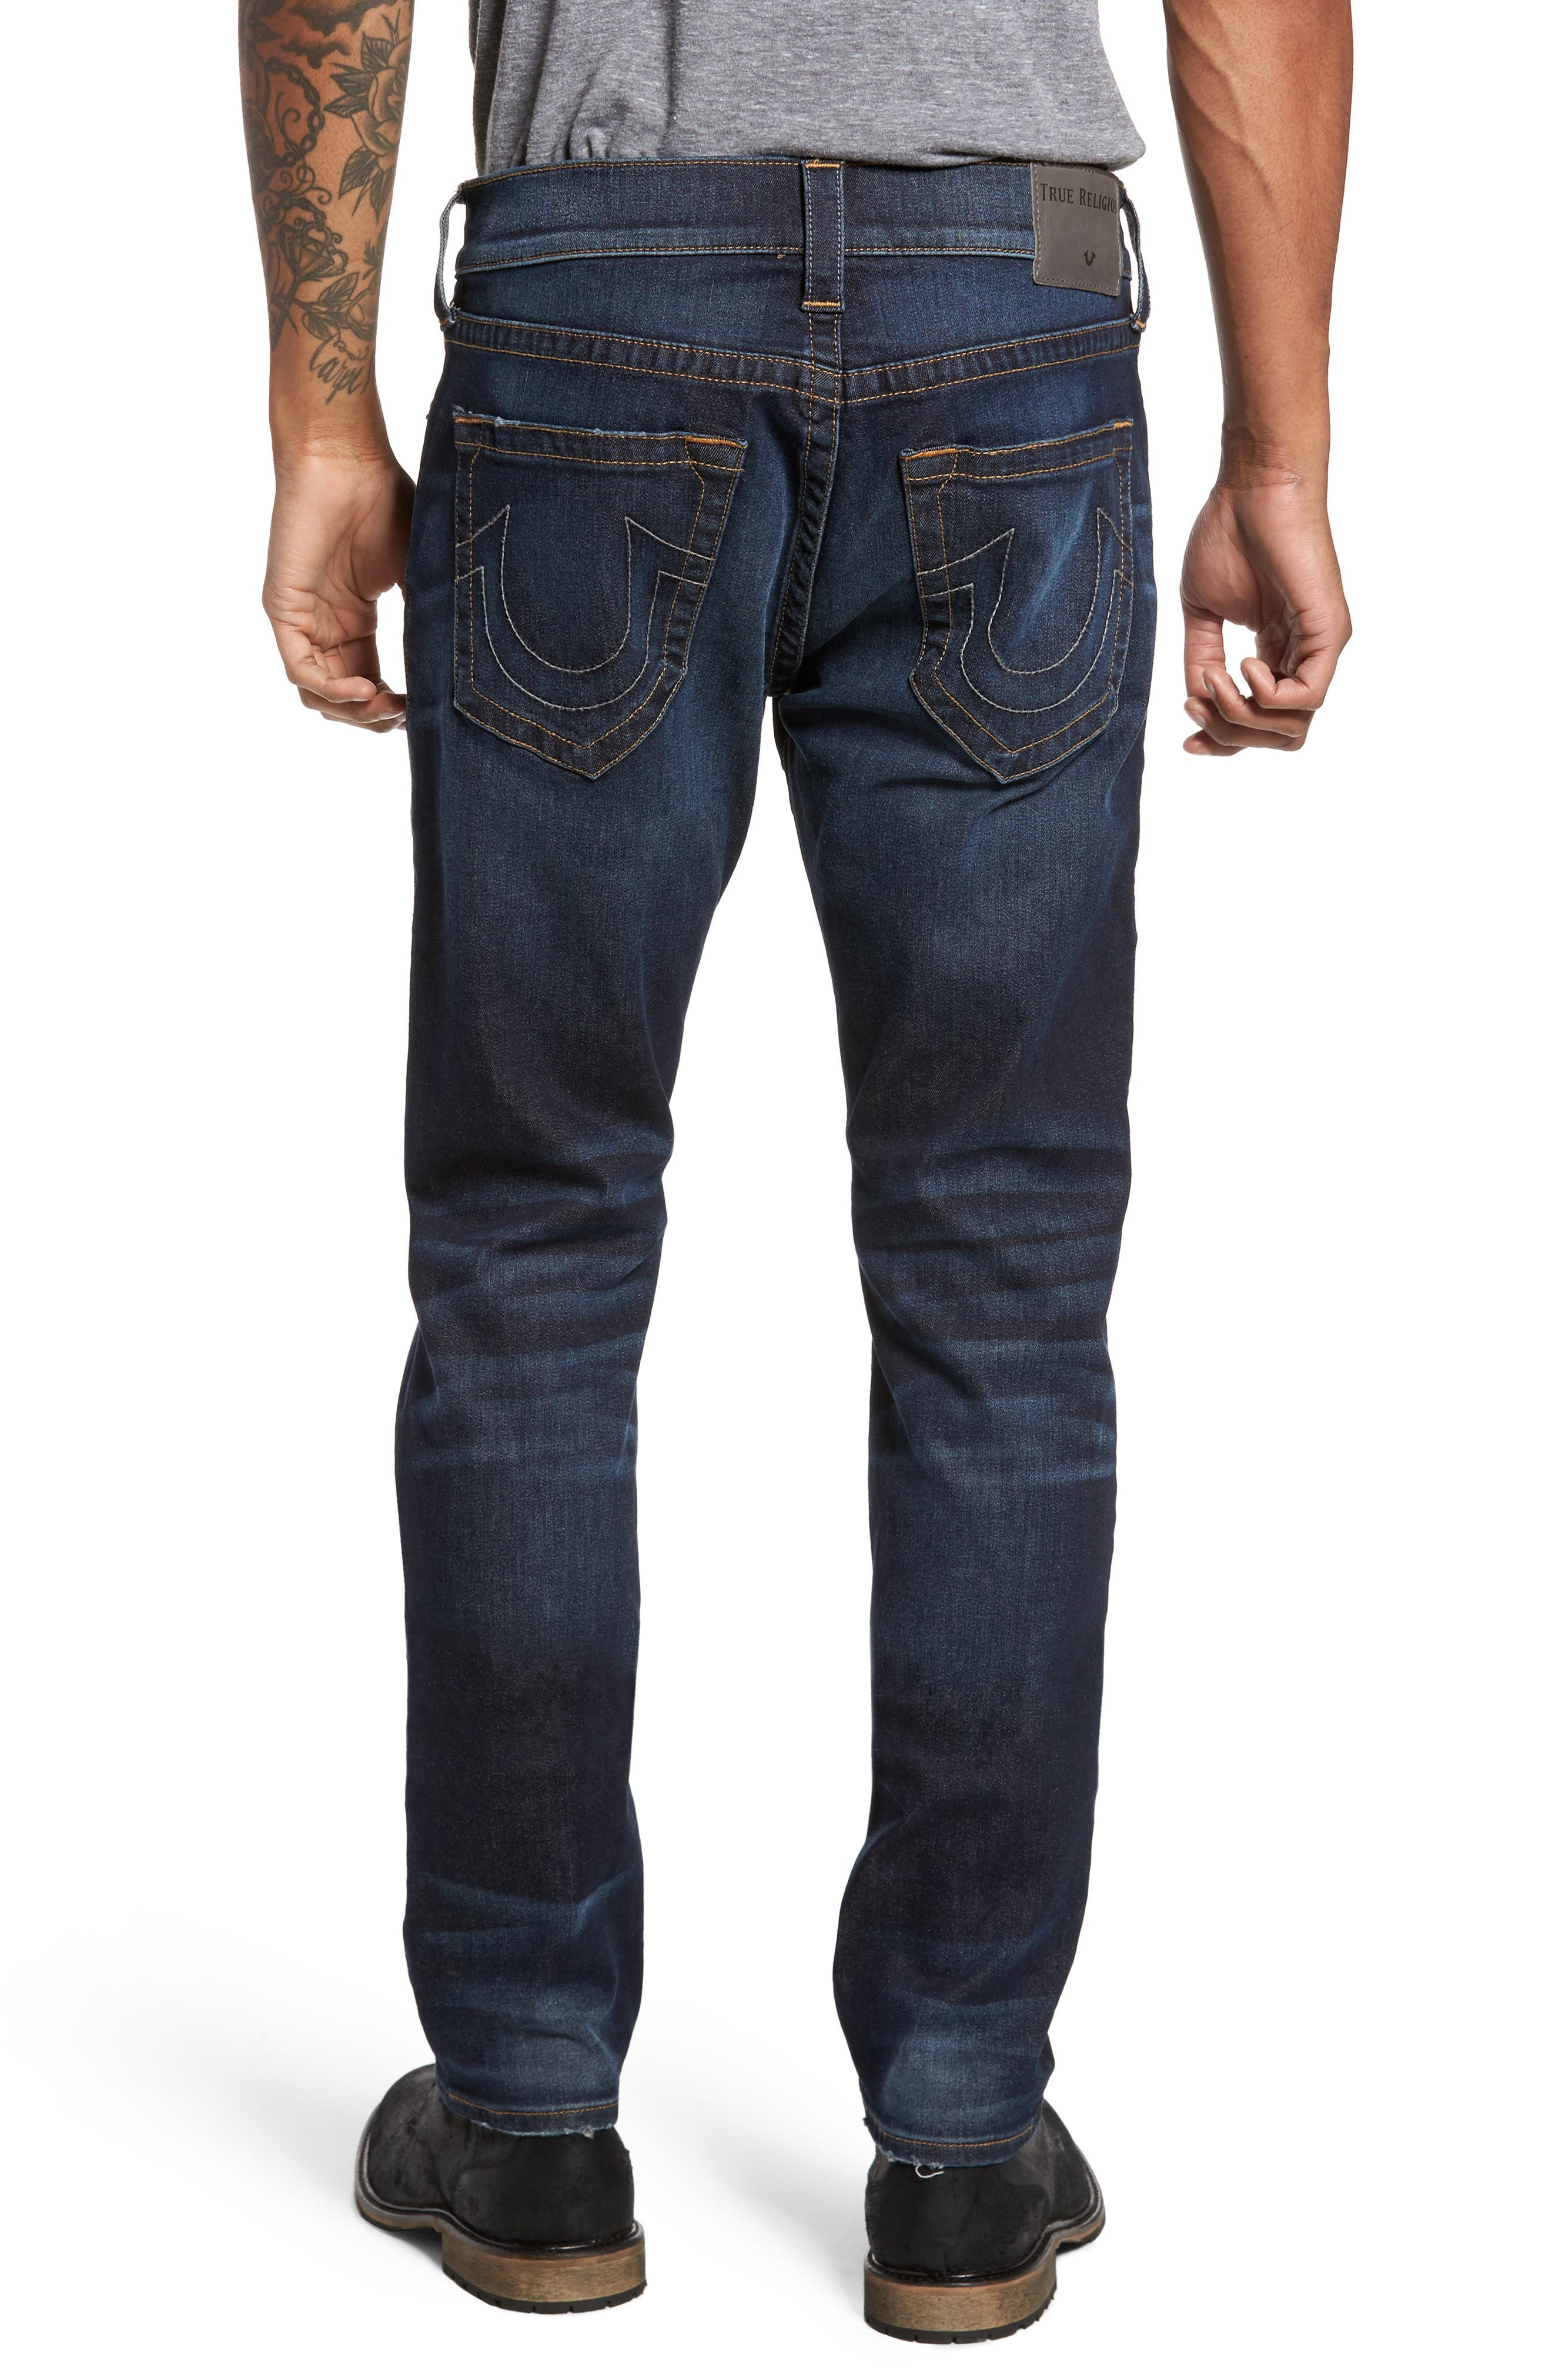 Rocco Skinny Fit Jeans,                             Alternate thumbnail 2, color,                             Dark Indigo Luxe